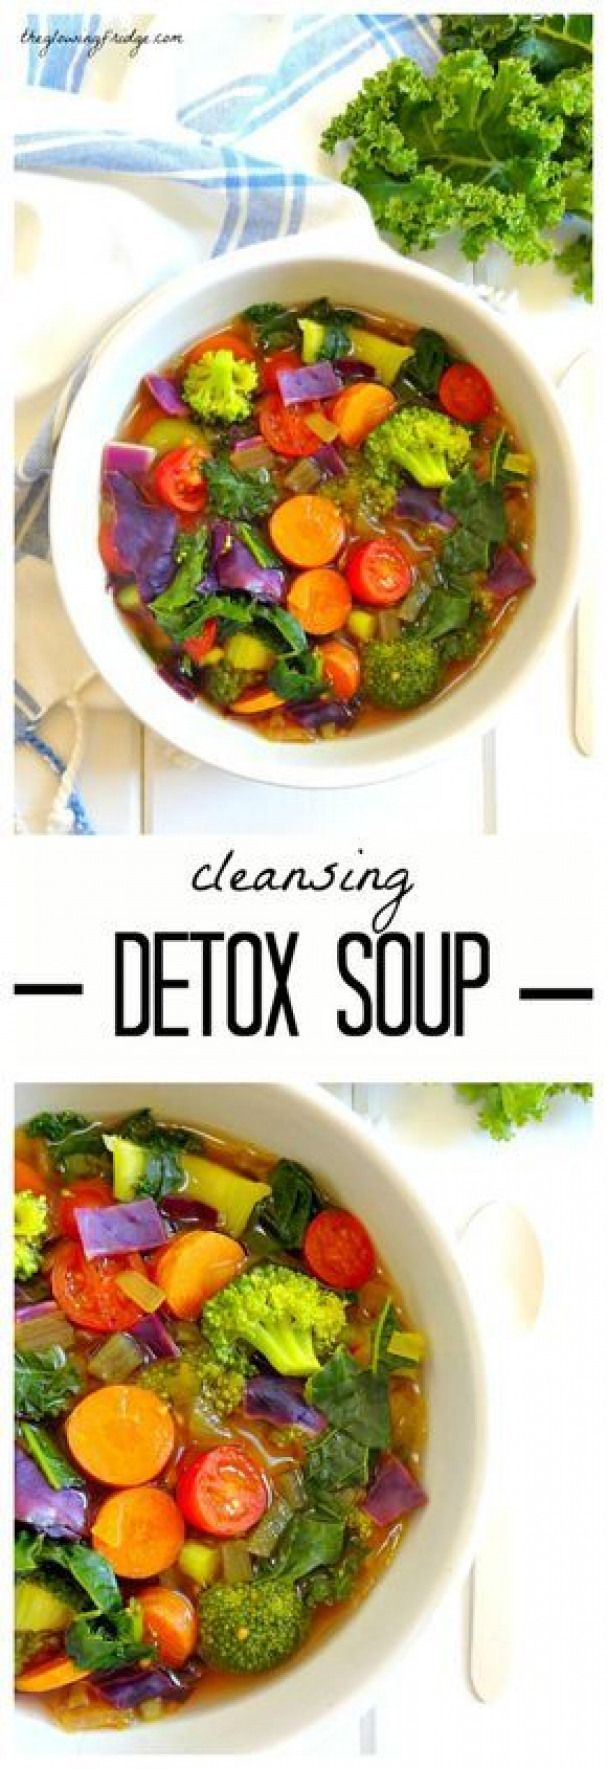 Cleansing Detox Soup || Immune-boosting wholesome vegan oil free and gluten free warming soup. Perfect for fighting off colds and flu while cleansing with natural delicious immunity boosting whole foods. #detoxsoup #soupedetoxminceur